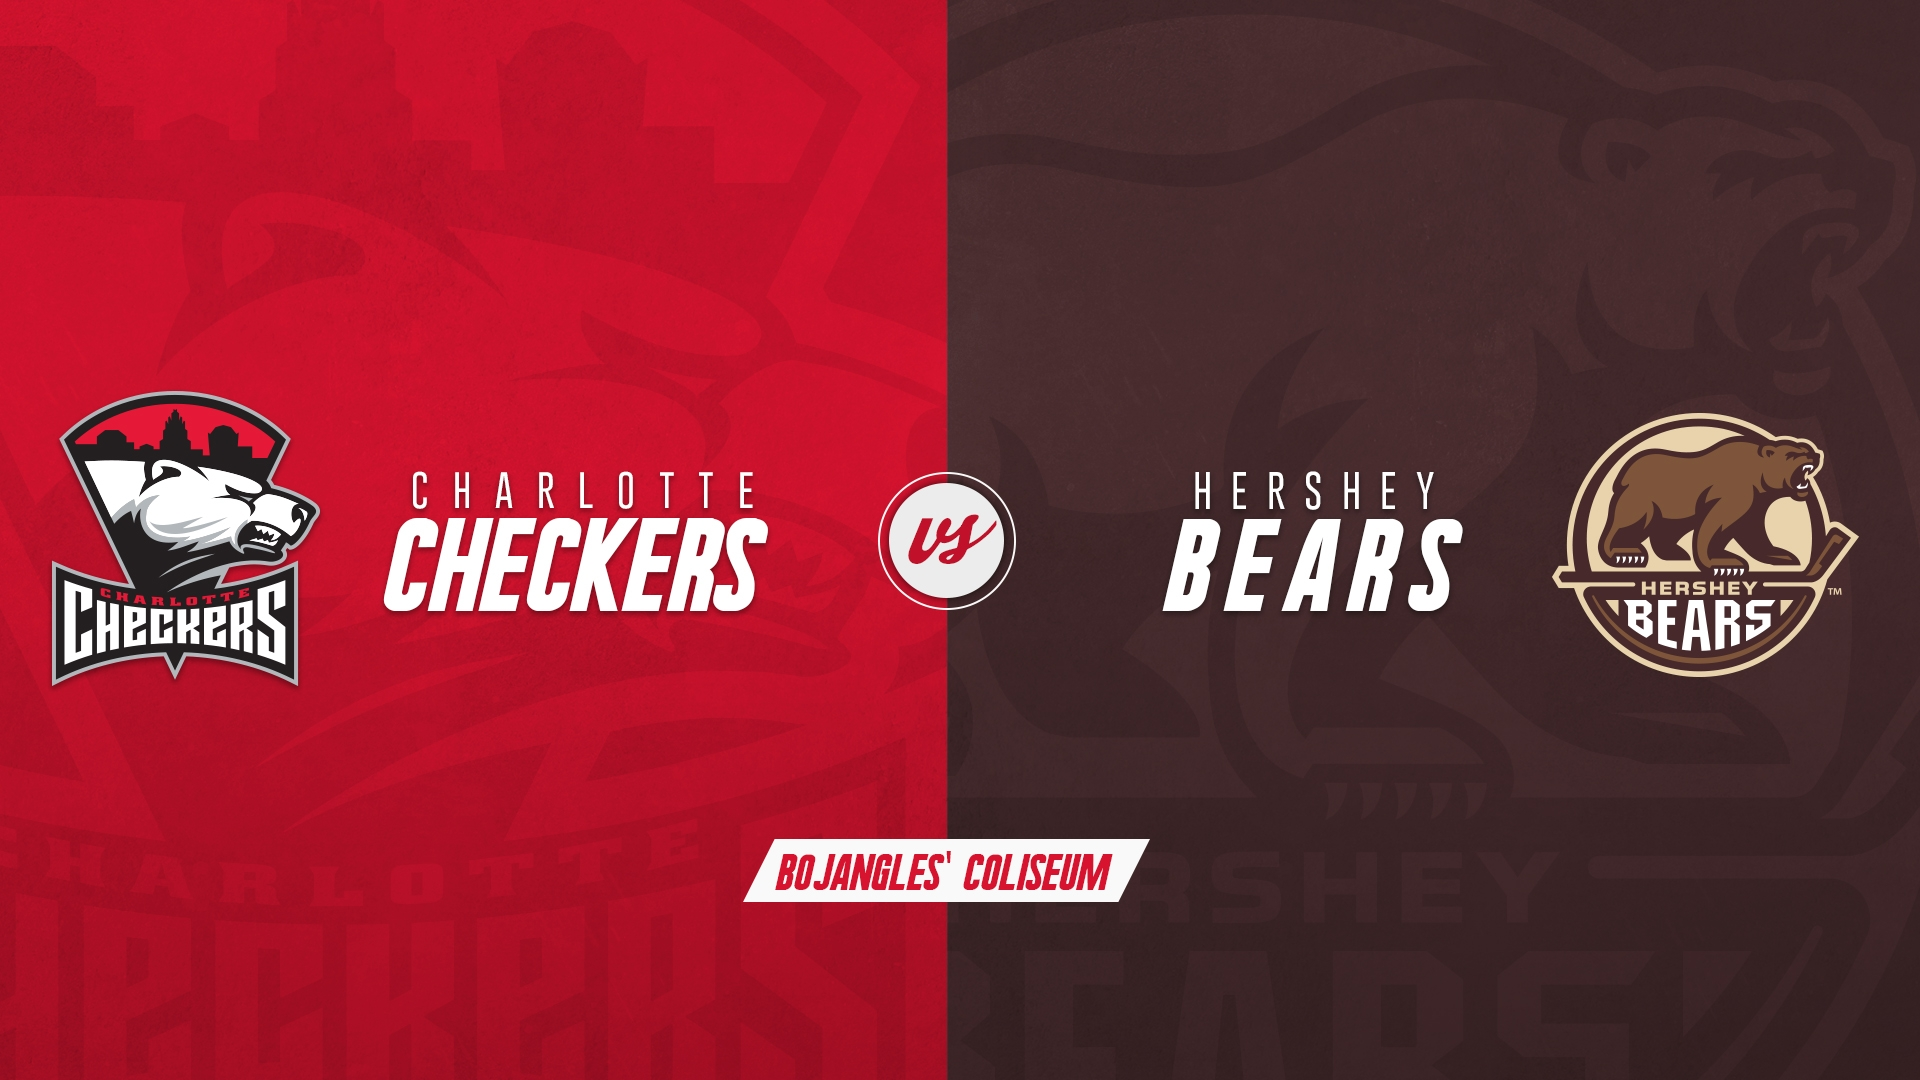 Charlotte Checkers vs. Hershey Bears - SUSPENDED